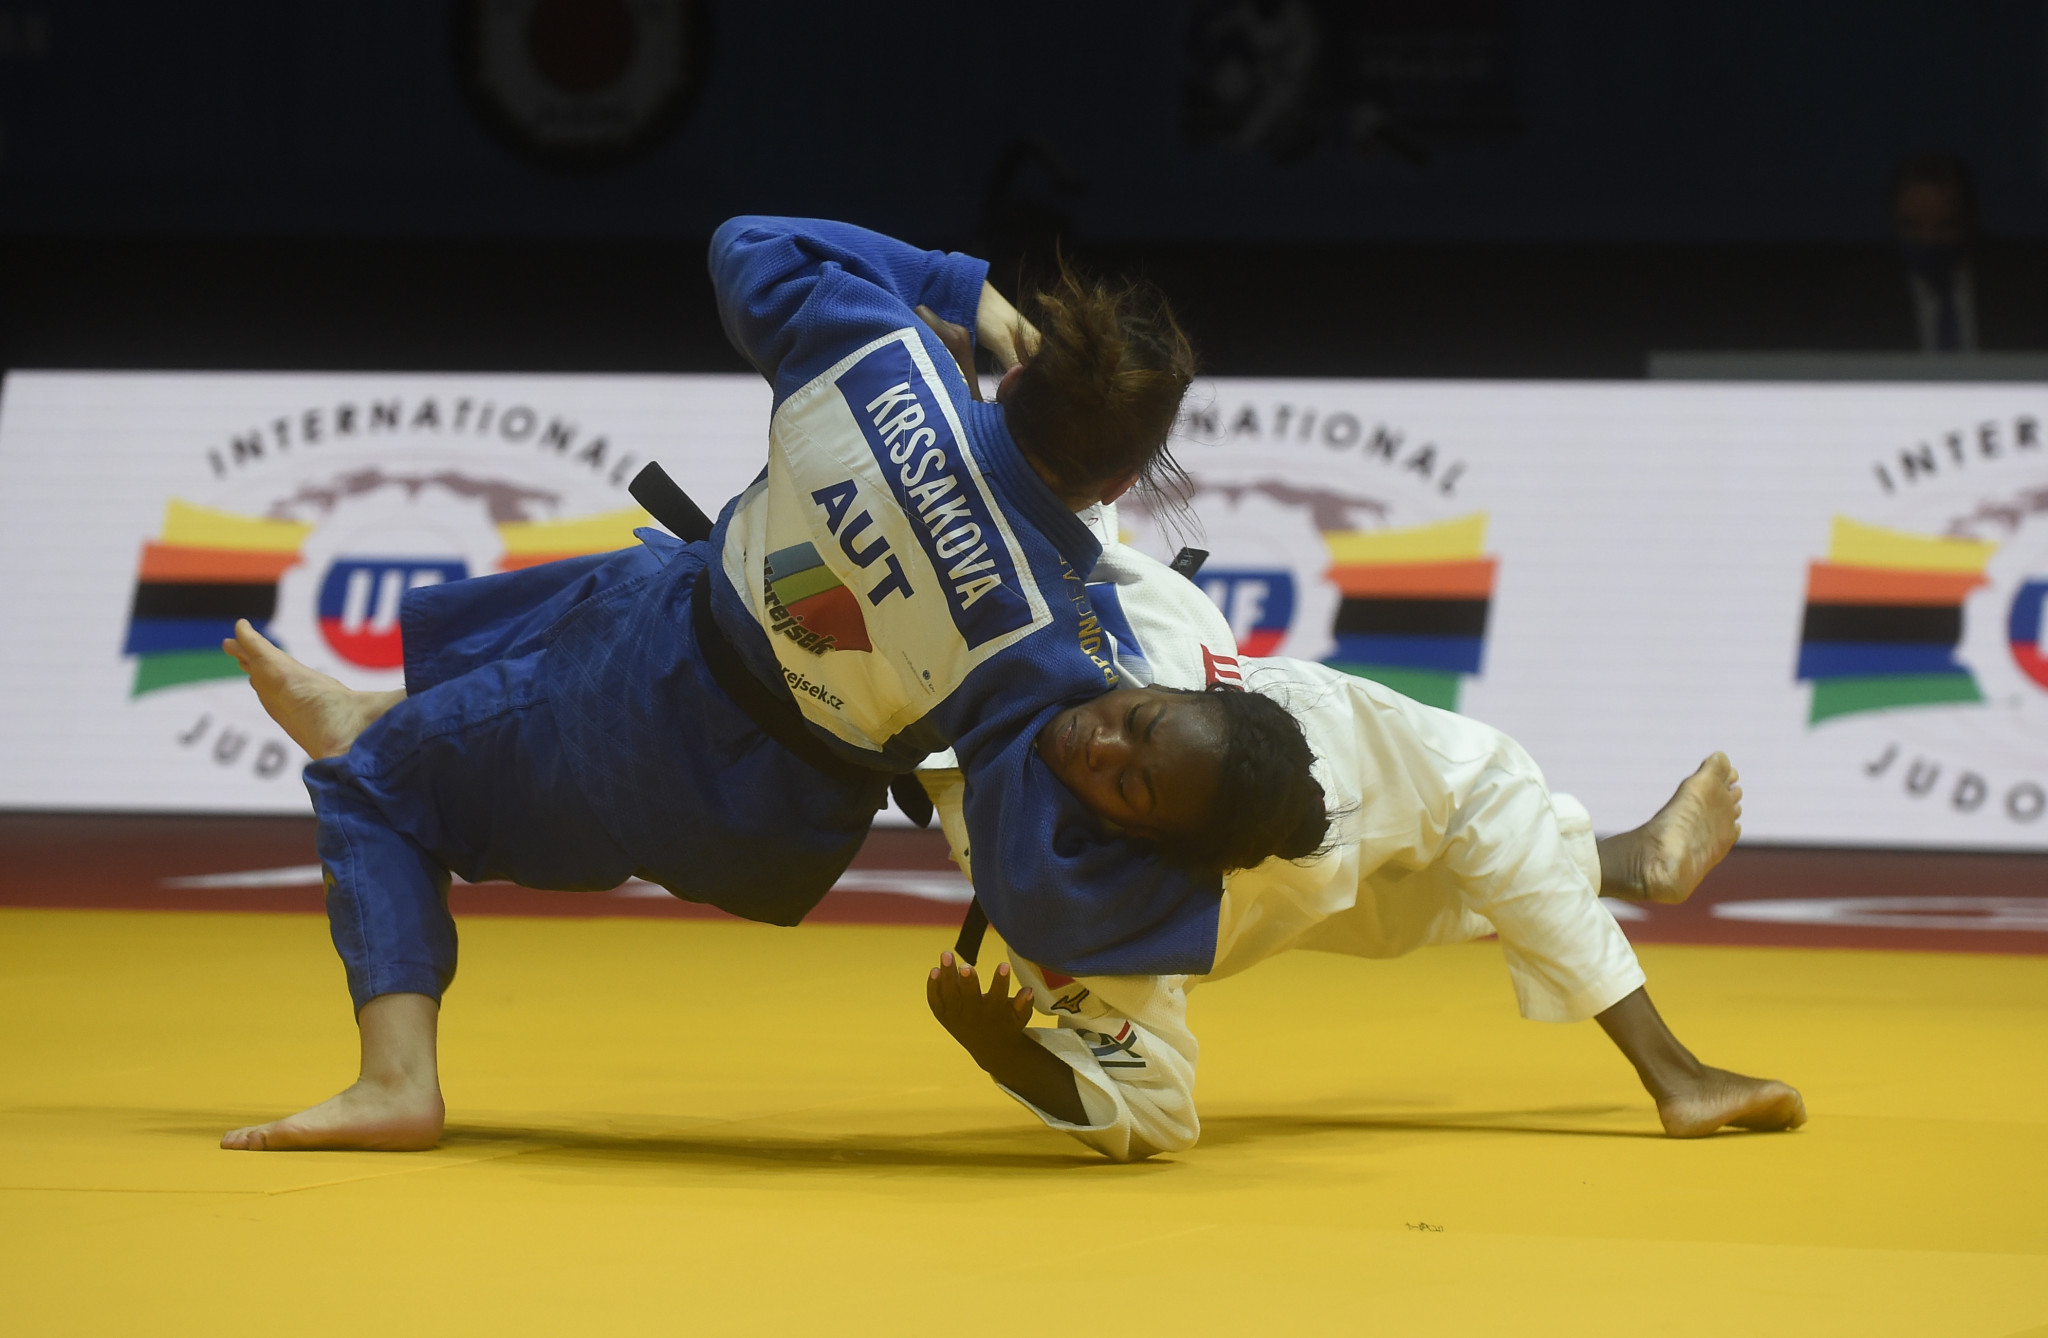 Supreme Agbegnenou wins fifth title at European Judo Championships